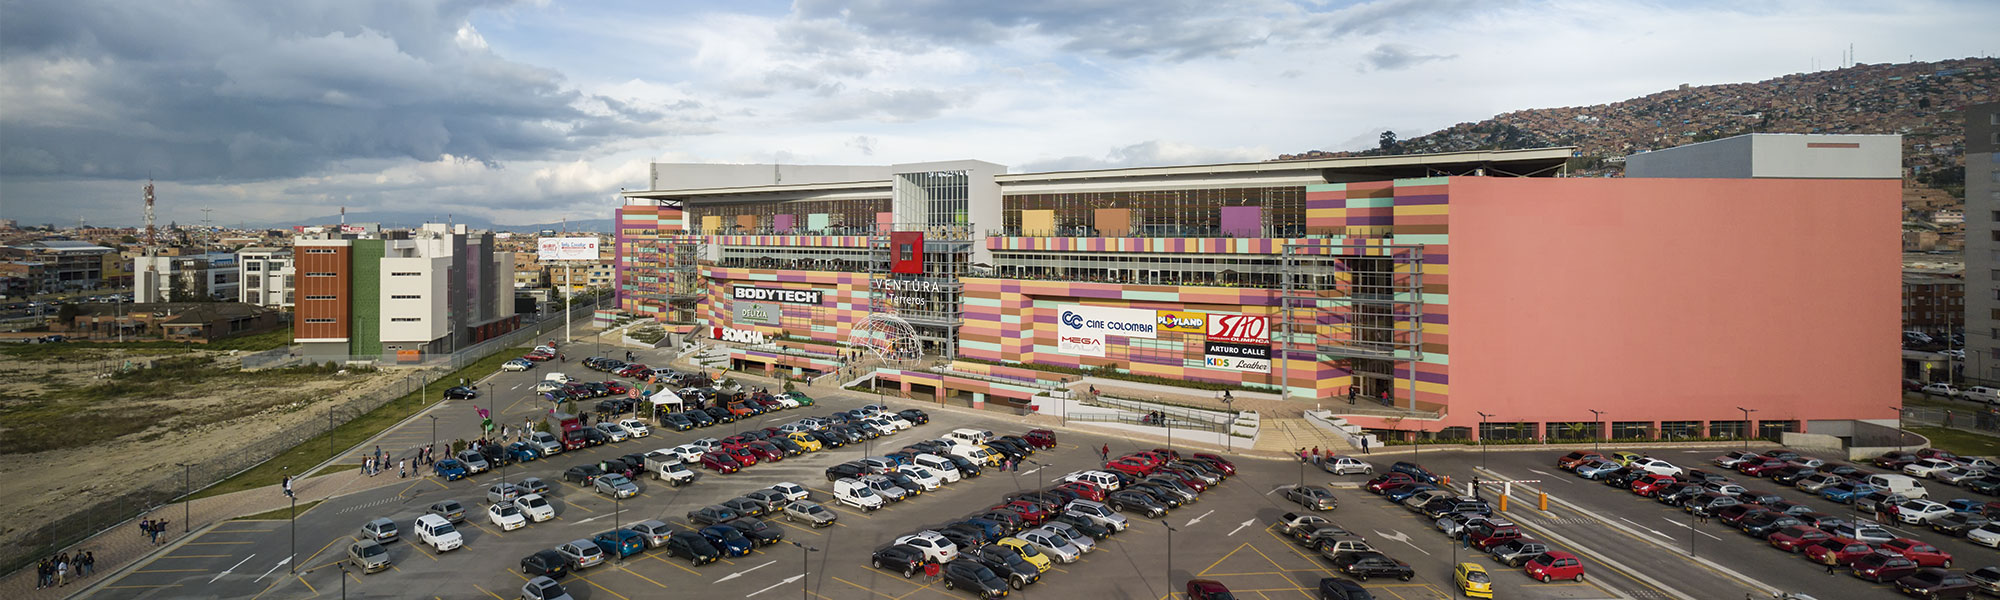 Ventura Terreros Shopping Center is a commercial project located in Soacha